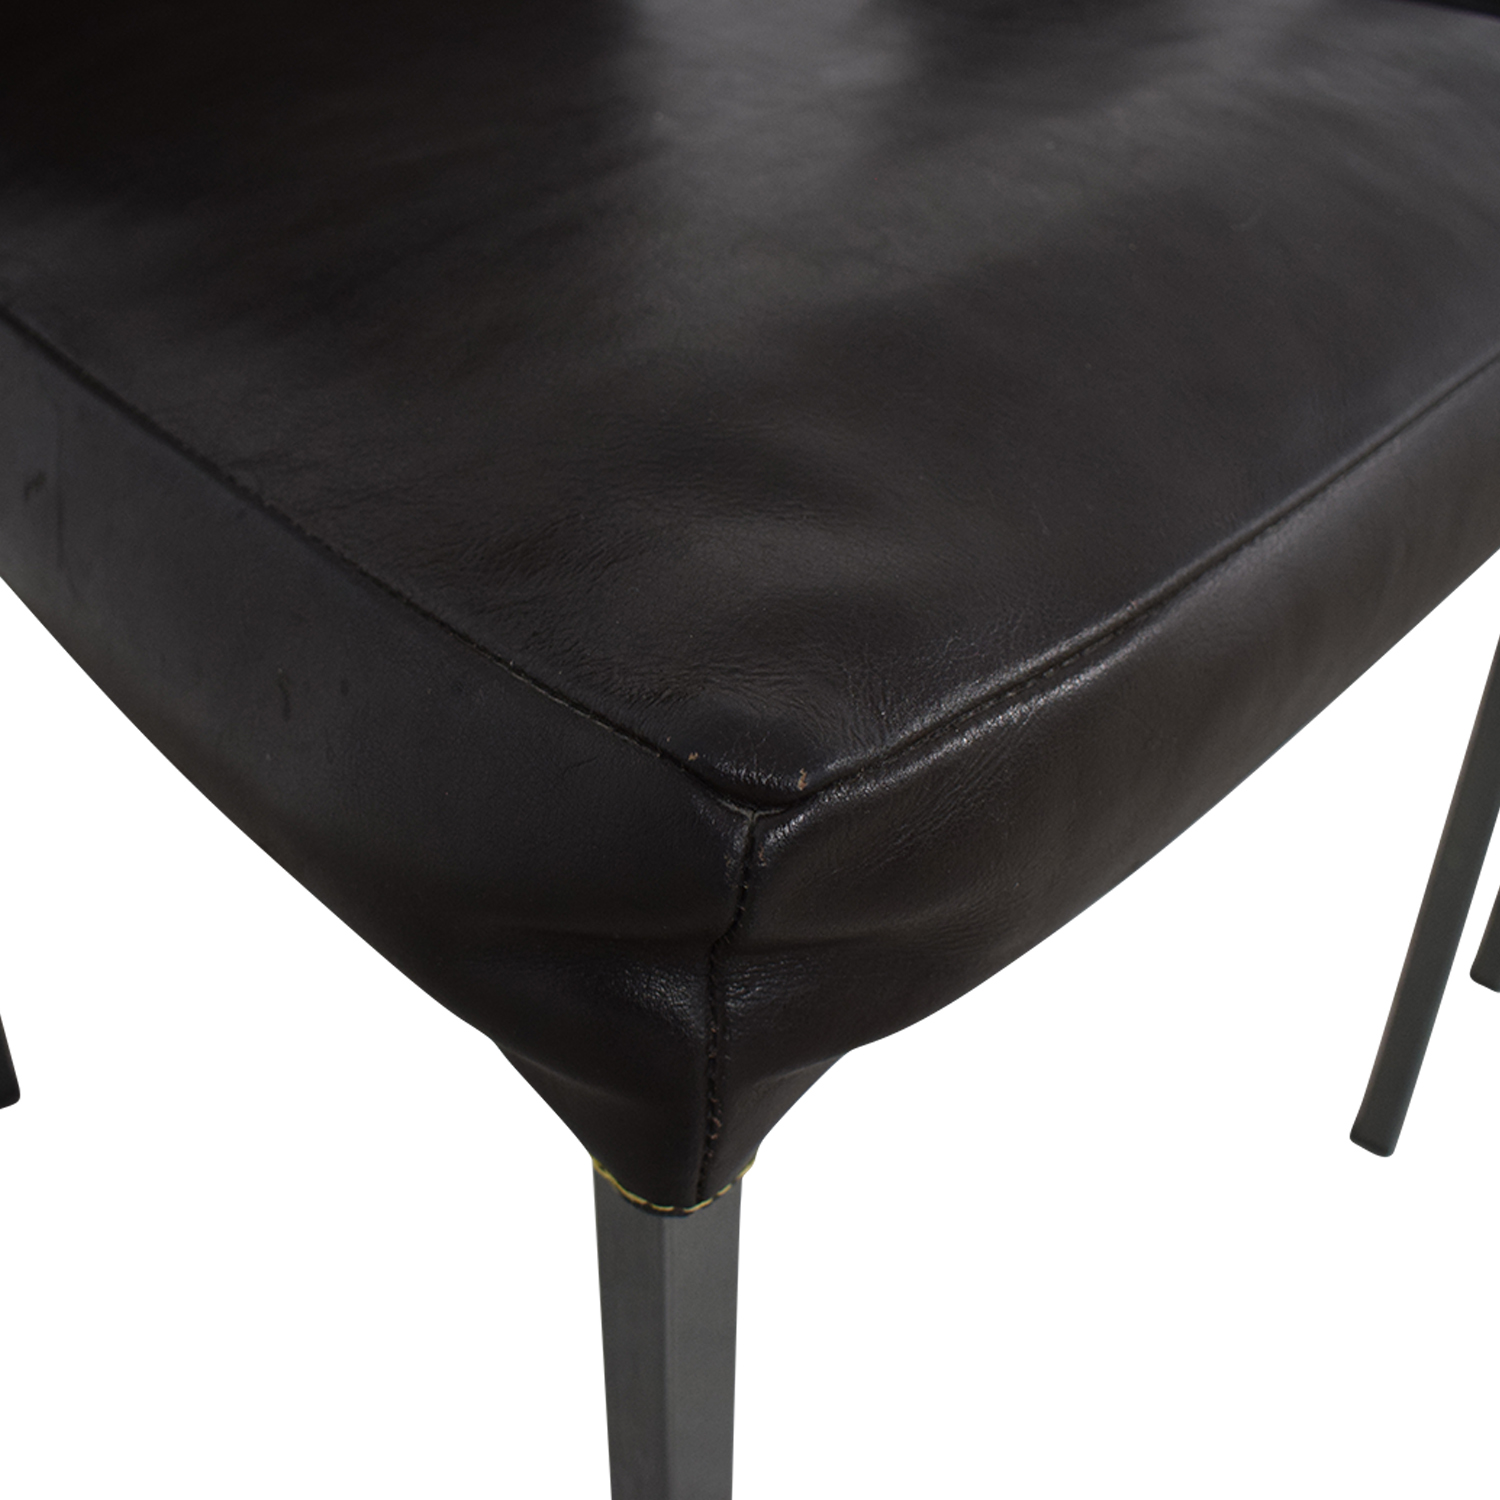 chair design within reach mid century rocking nursery 69 off kff leather dining buy chairs